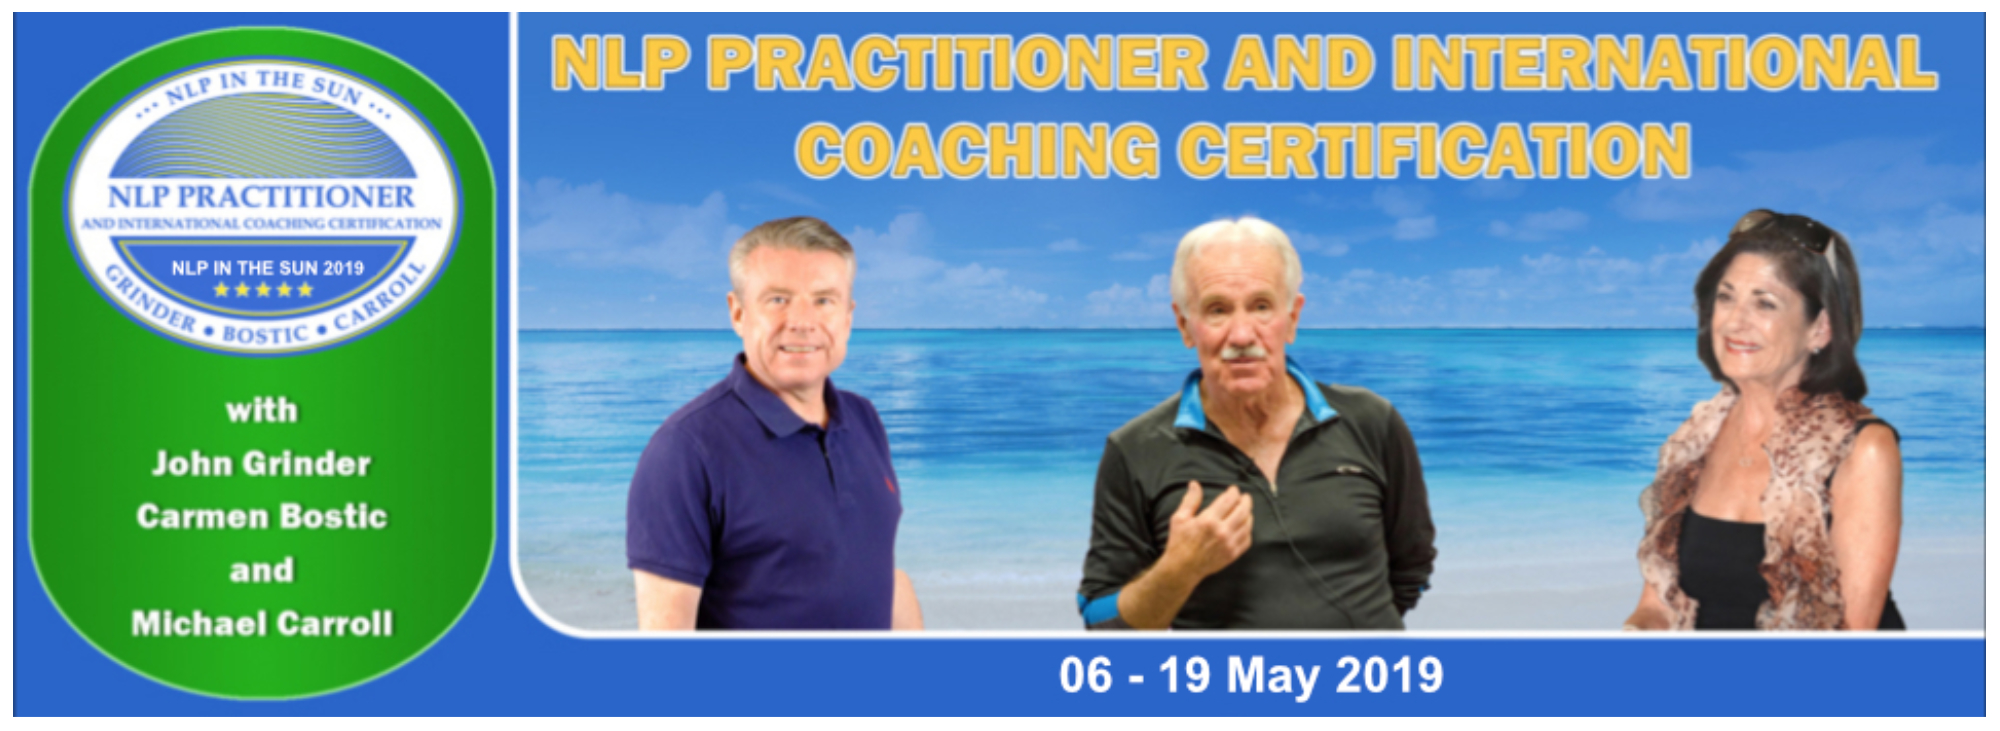 NLP Practitioner and International Coaching Certification (Portugal)